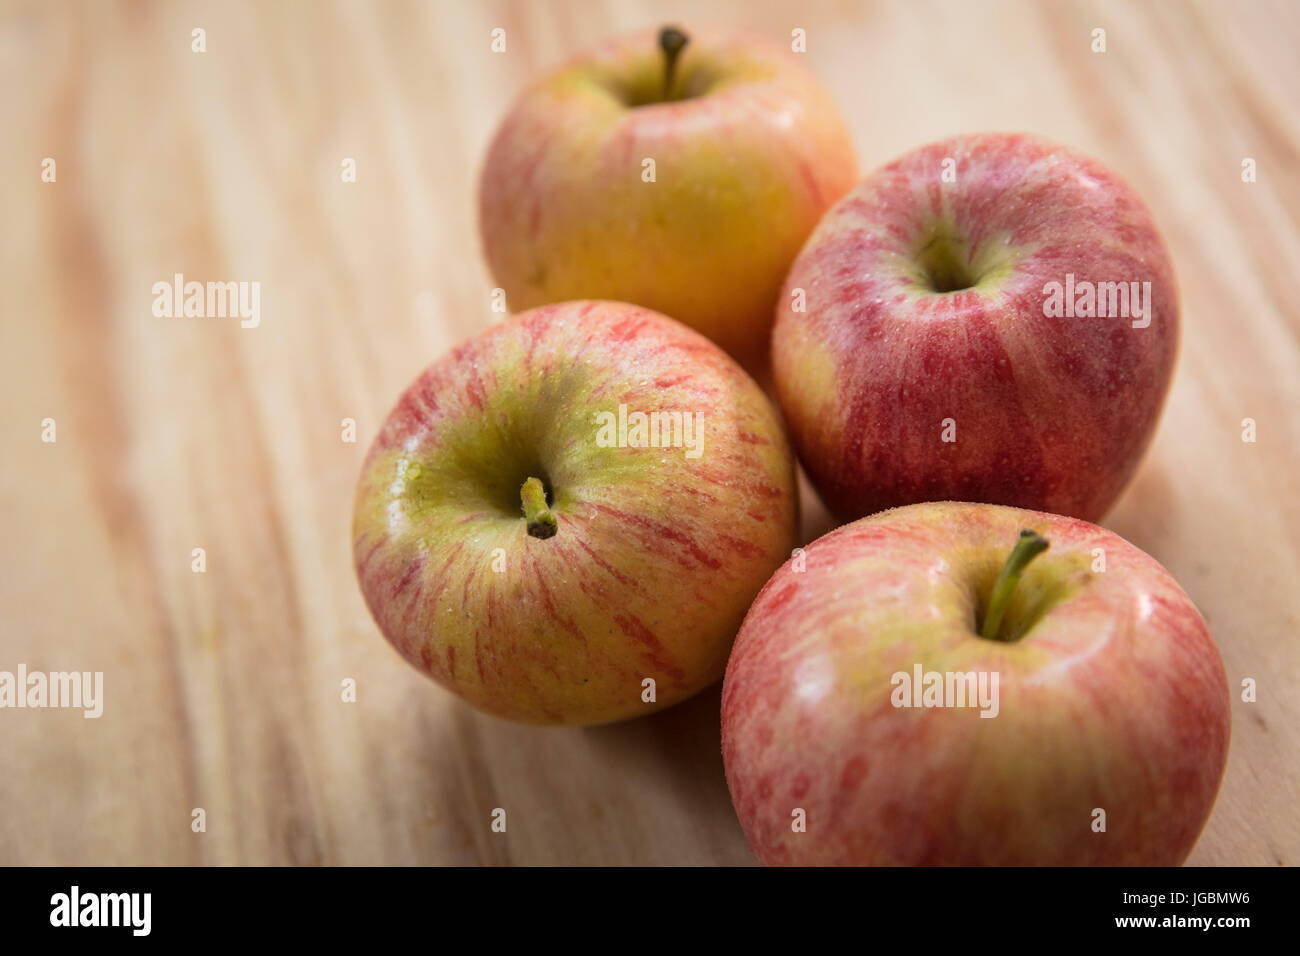 four apples on a wooden surface pink lady variety stock photo